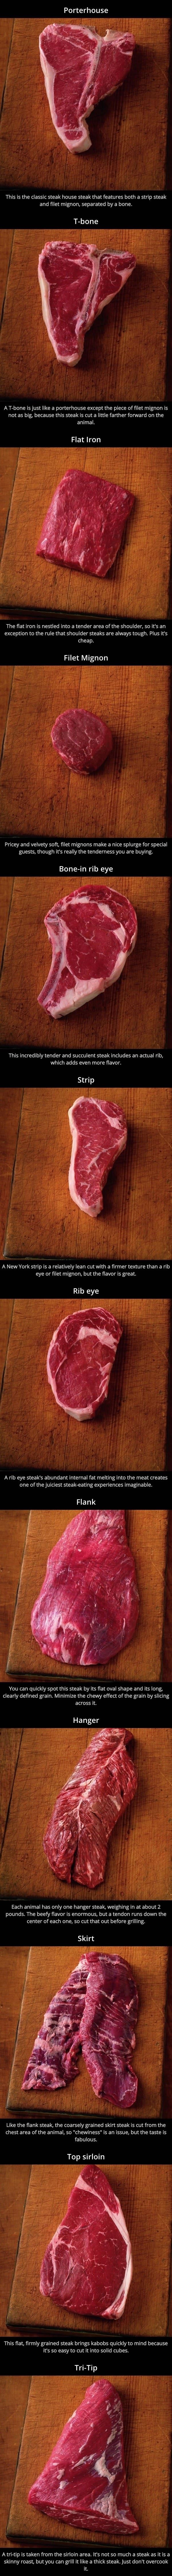 A Guide To Different Types Of Steak